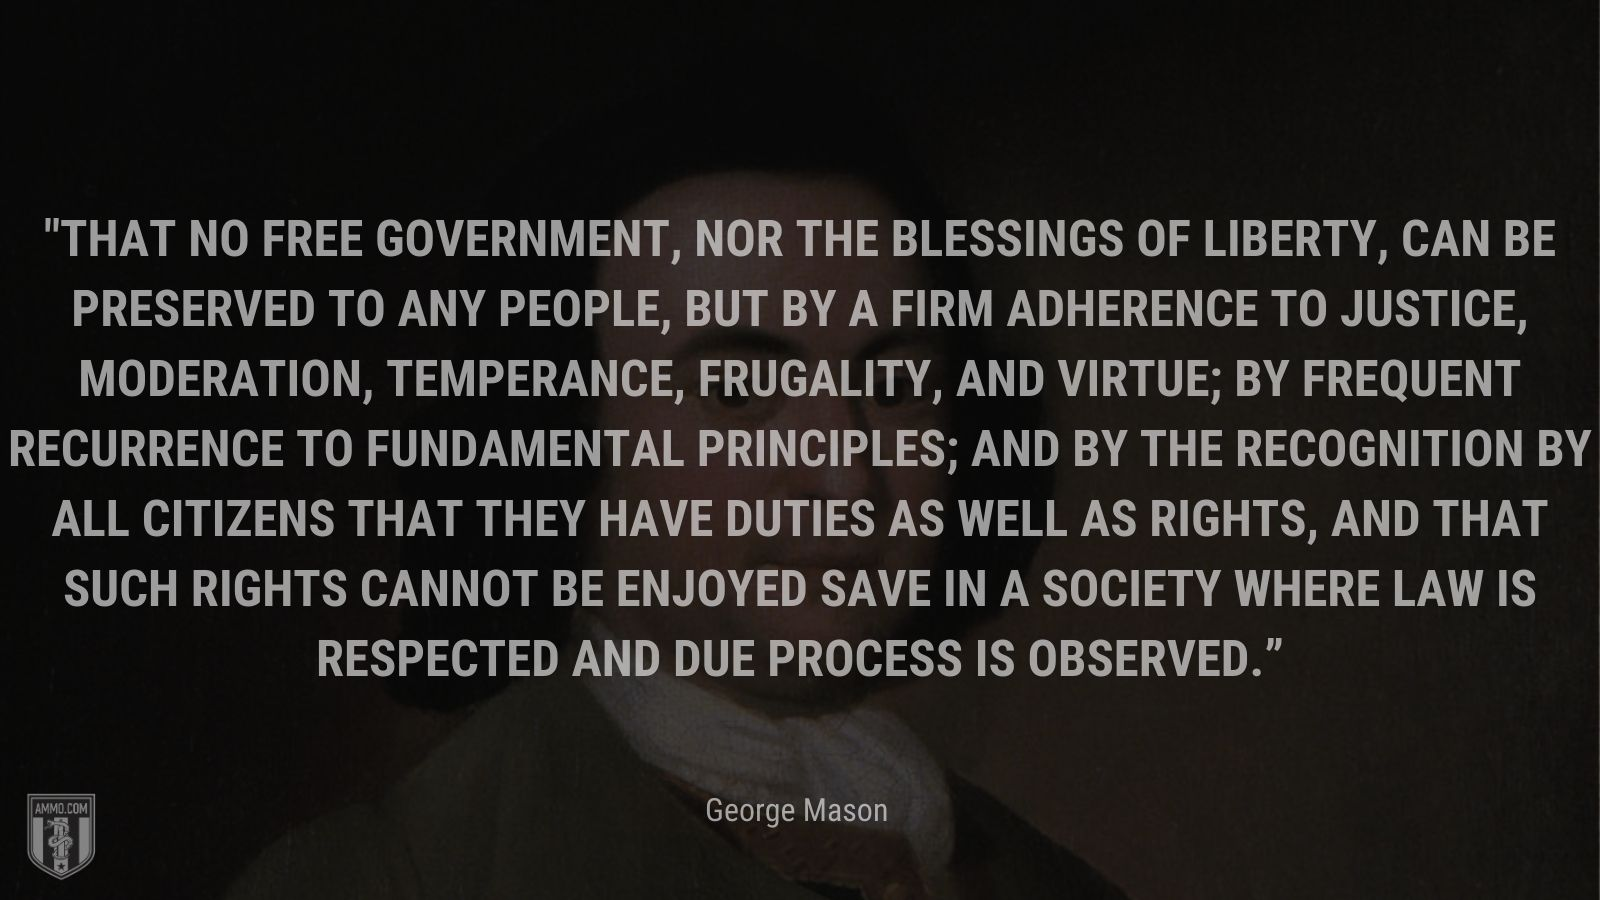 """""""That no free government, nor the blessings of liberty, can be preserved to any people, but by a firm adherence to justice, moderation, temperance, frugality, and virtue; by frequent recurrence to fundamental principles; and by the recognition by all citizens that they have duties as well as rights, and that such rights cannot be enjoyed save in a society where law is respected and due process is observed."""" - George Mason"""